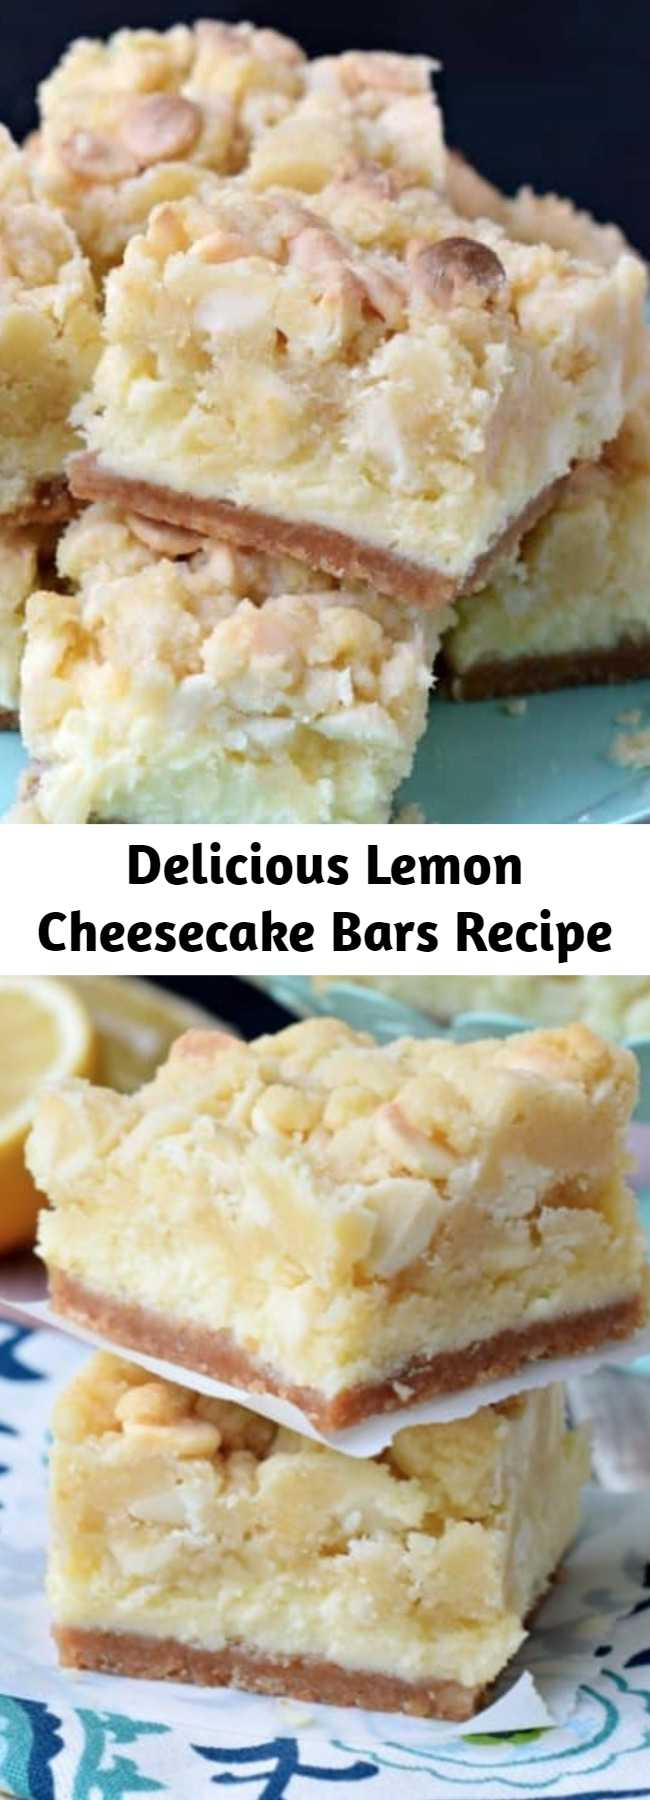 Delicious Lemon Cheesecake Bars Recipe - Sweet Lemon Cheesecake Bars have a graham cracker crust, lemon cheesecake filling, and white chocolate chip cookie topping! One of the most delicious desserts ever!!